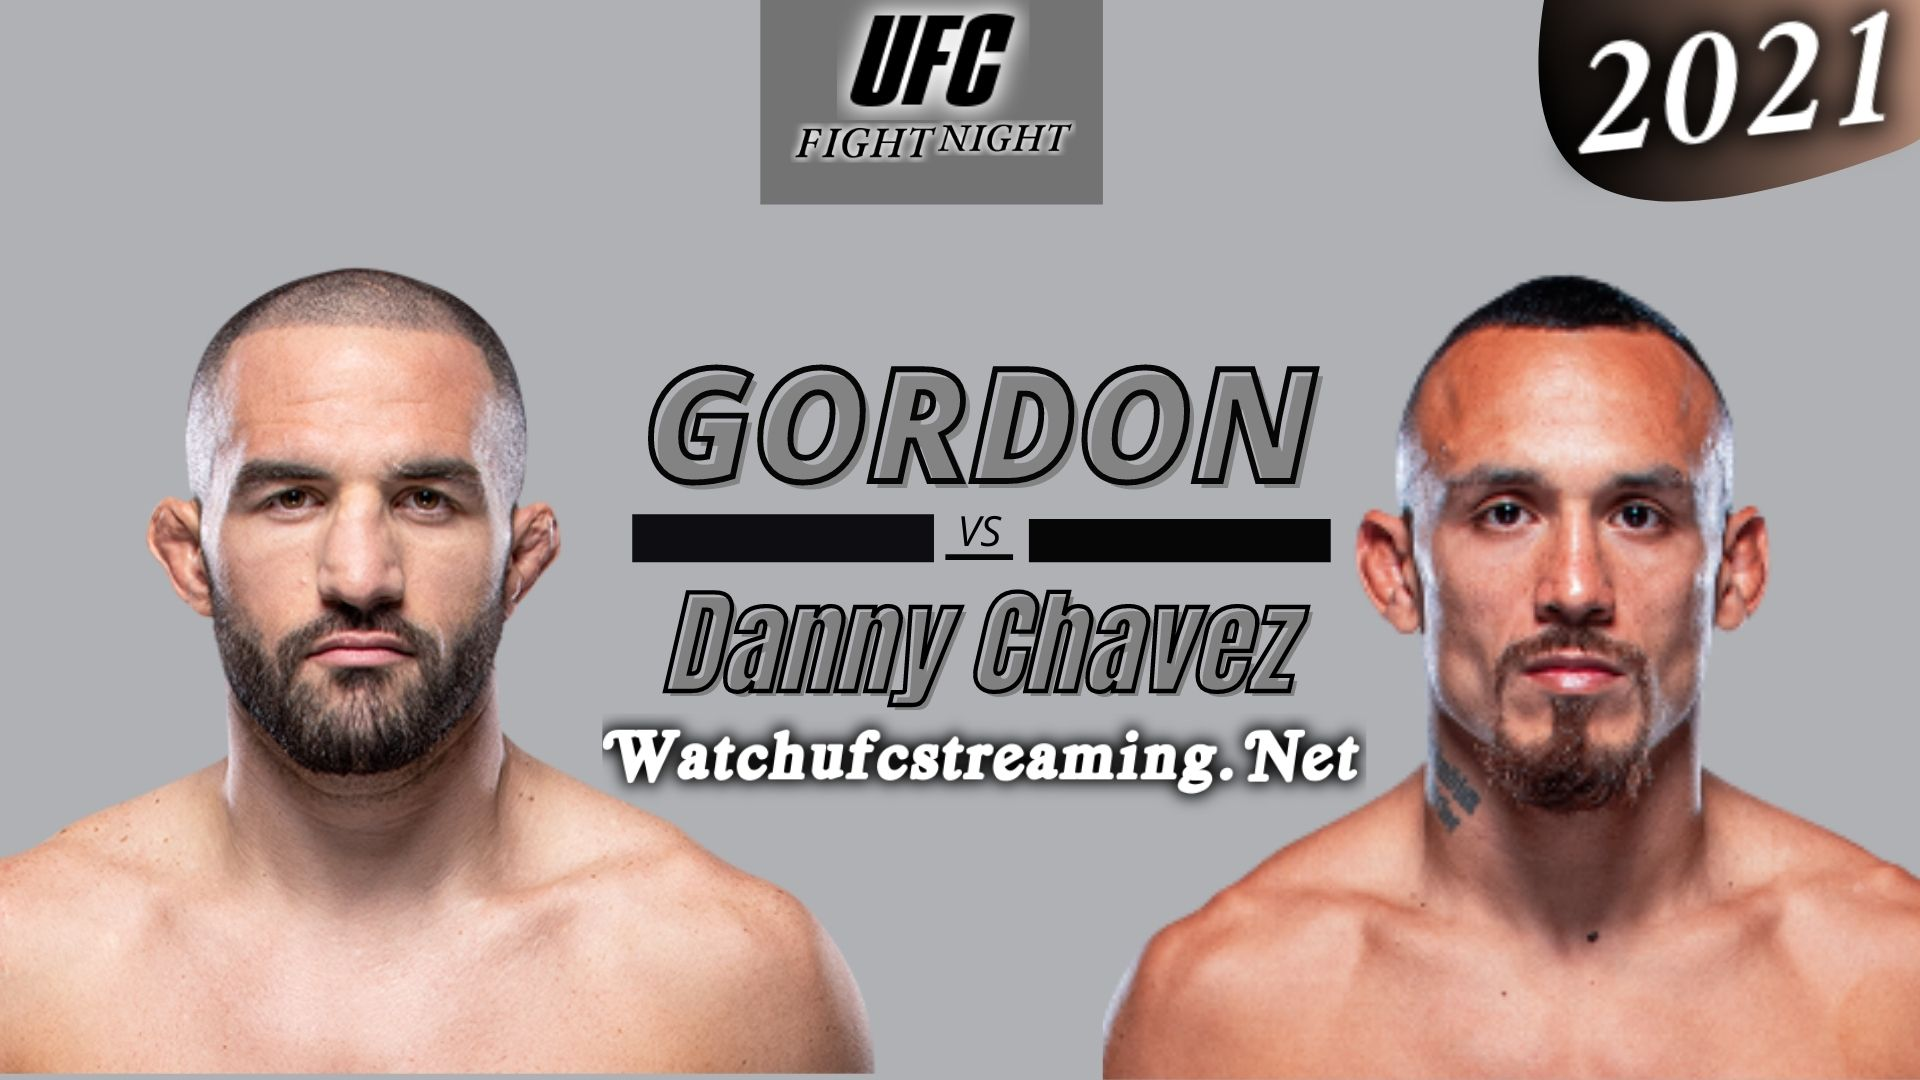 UFC: Jared Gordon Vs Danny Chavez Highlights 2021 | Featherweight